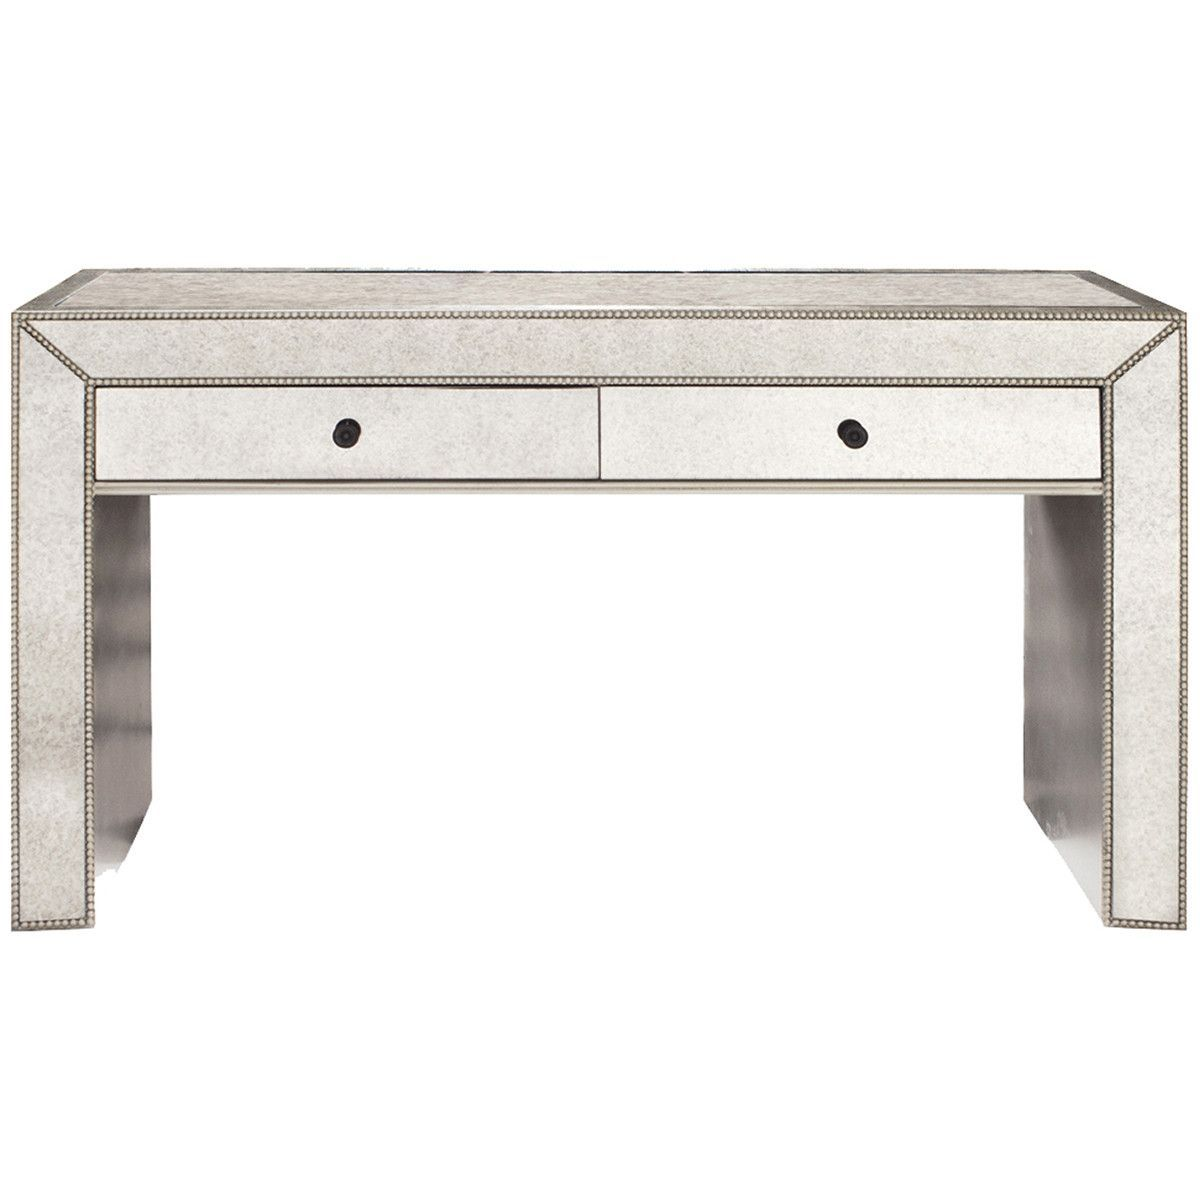 Howard elliott antiqued mirrored console table console tables howard elliott antiqued mirrored console table geotapseo Image collections